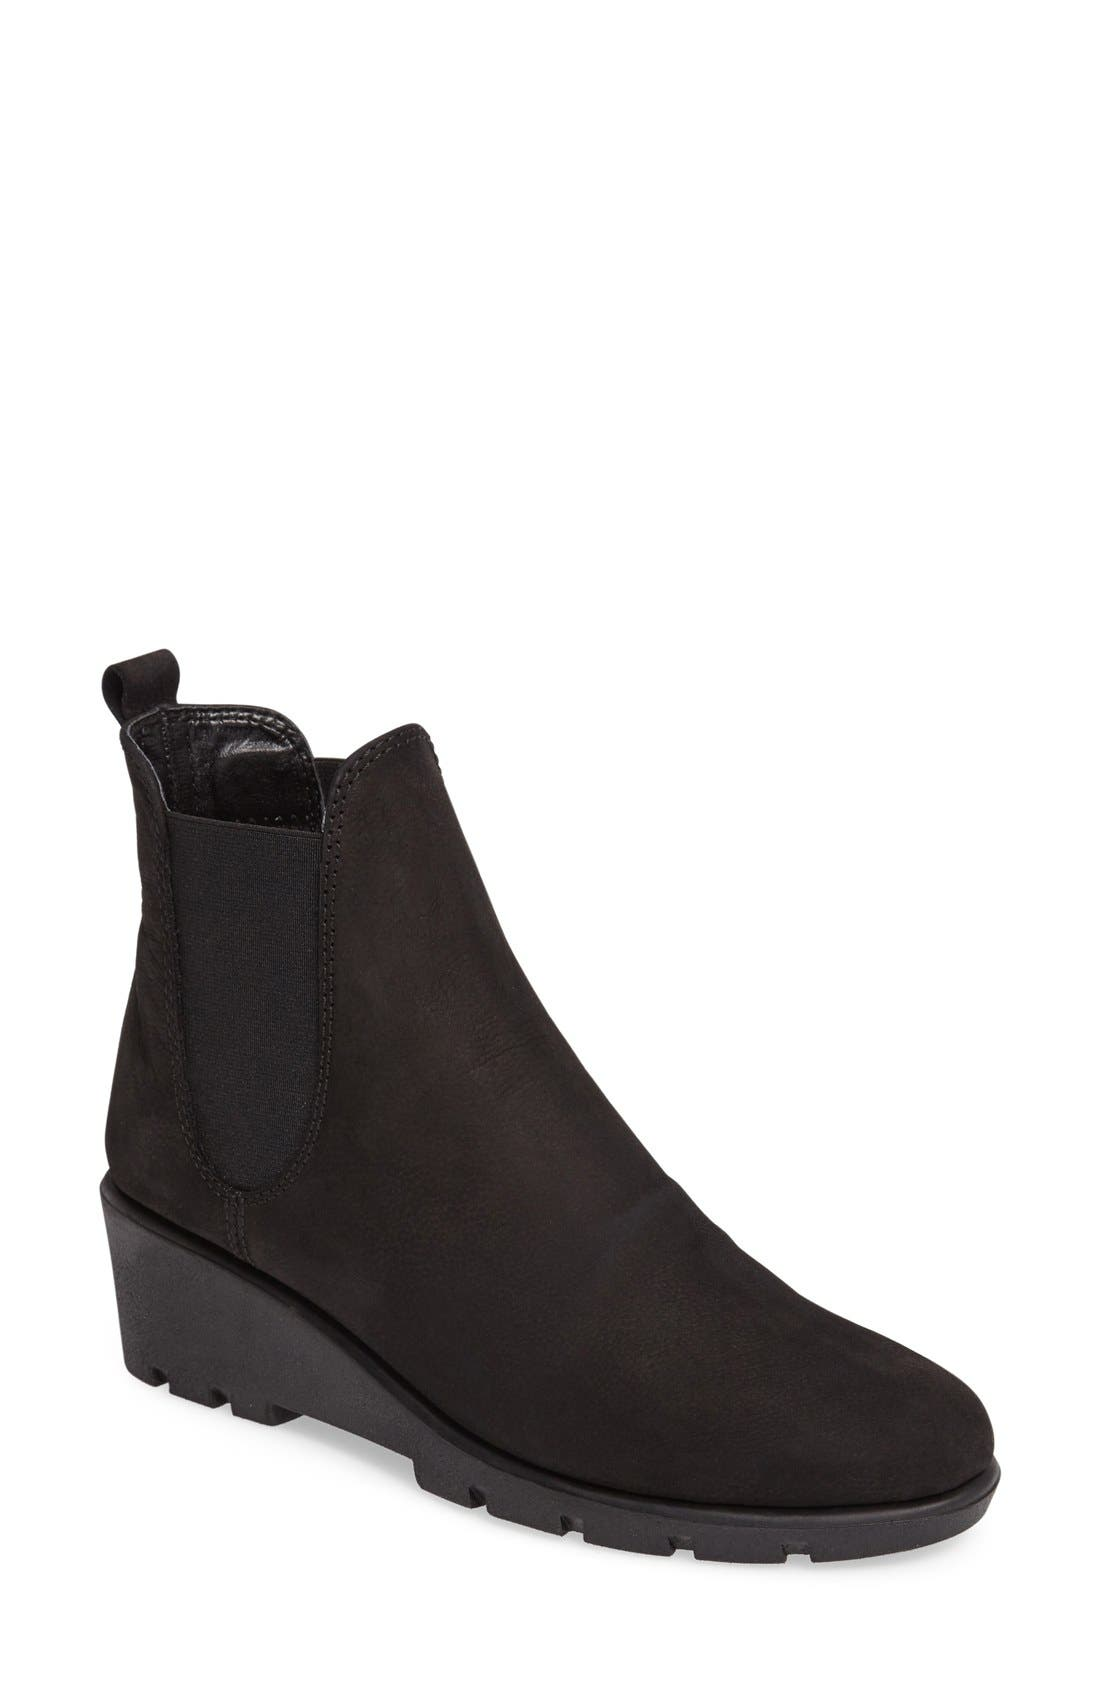 Main Image - The FLEXX Slimmer Chelsea Wedge Boot (Women)